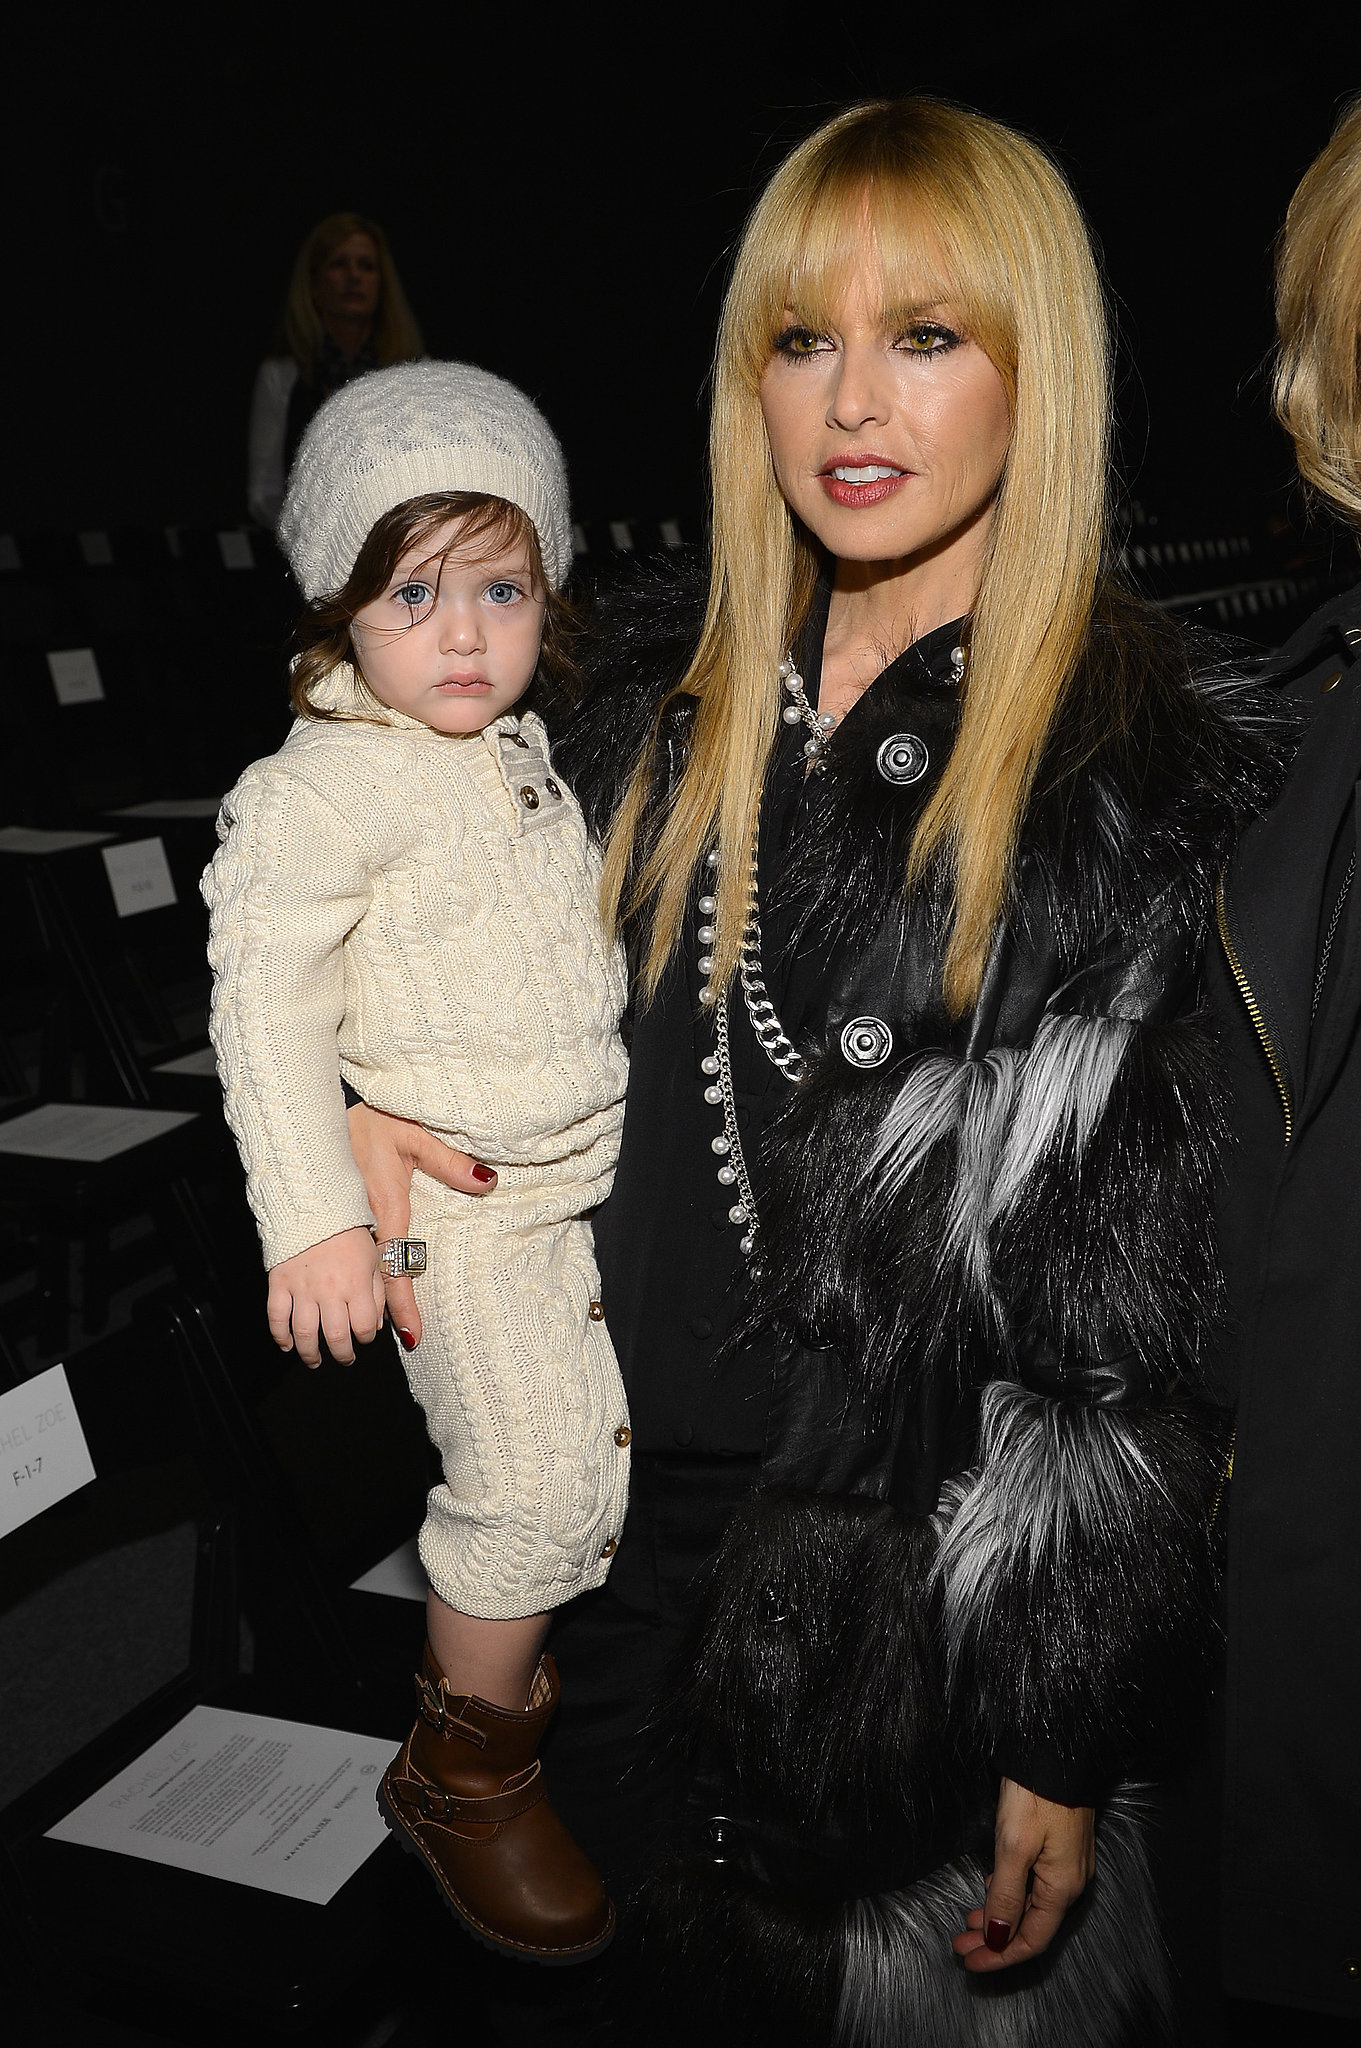 Rachel Zoe brought her son Skyler along to her runway show in February 2013.